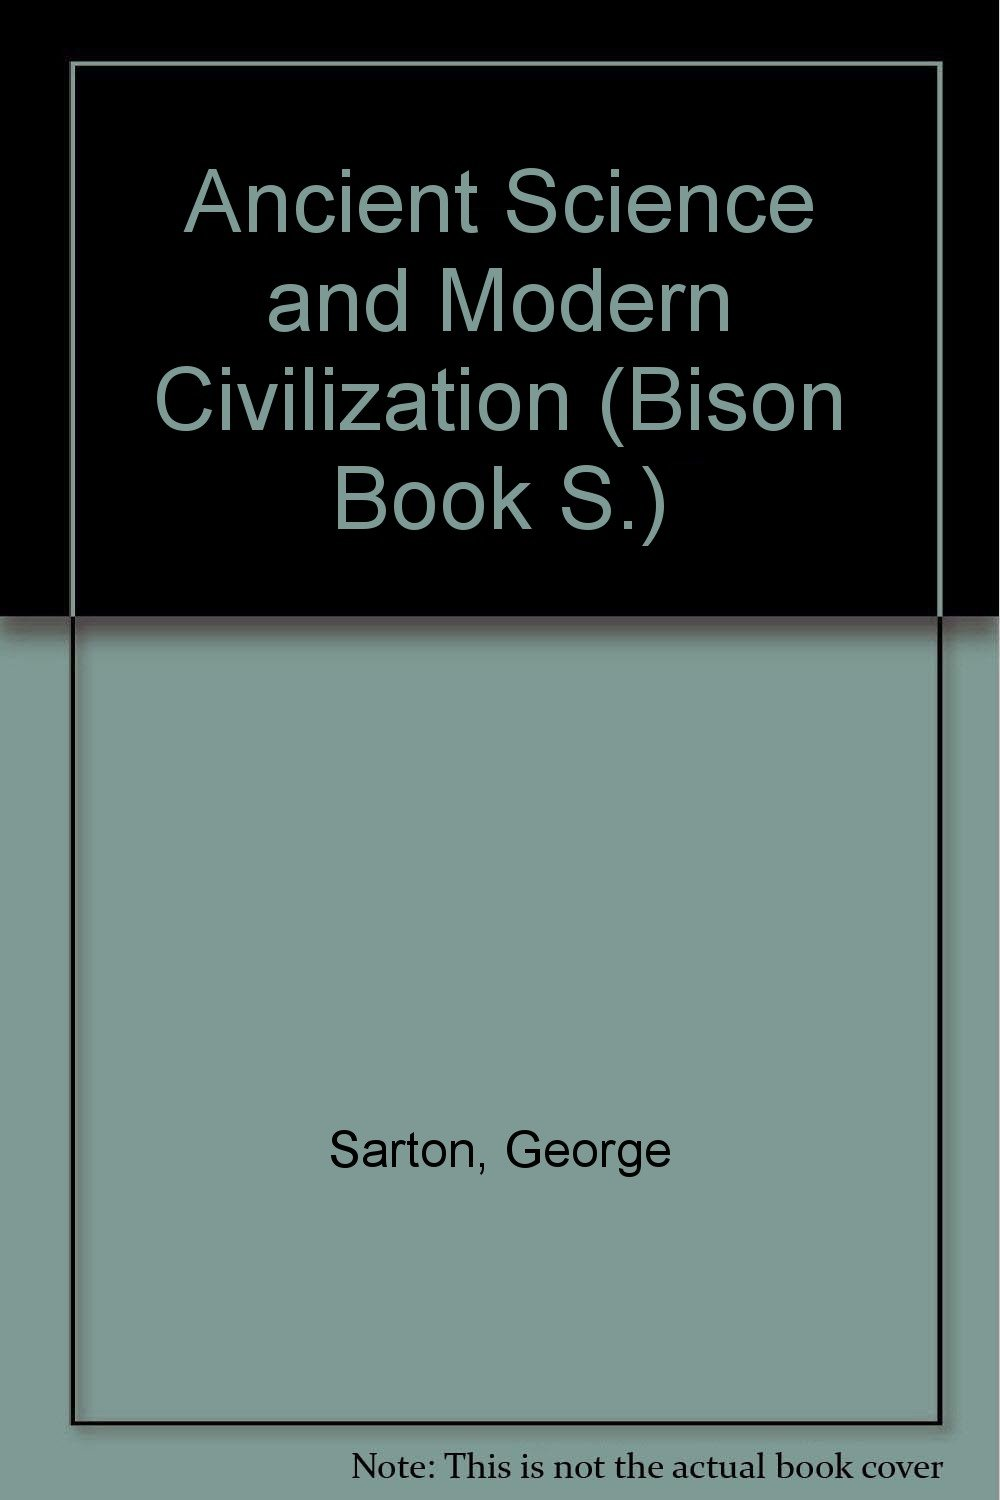 Ancient Science and Modern Civilization